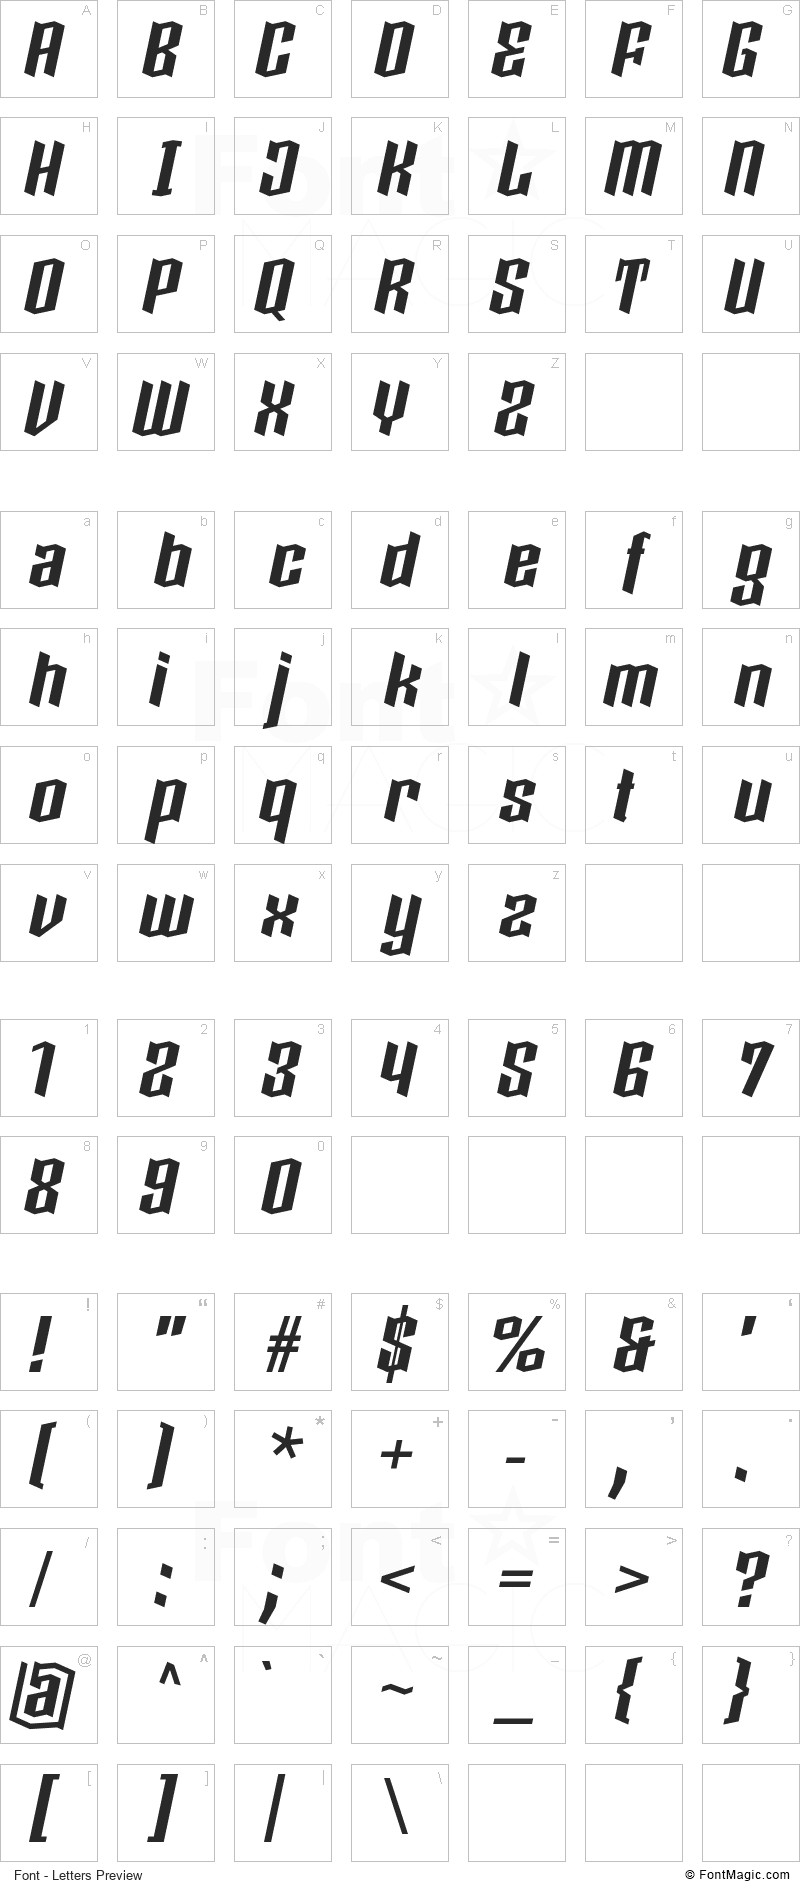 Boxise Font - All Latters Preview Chart